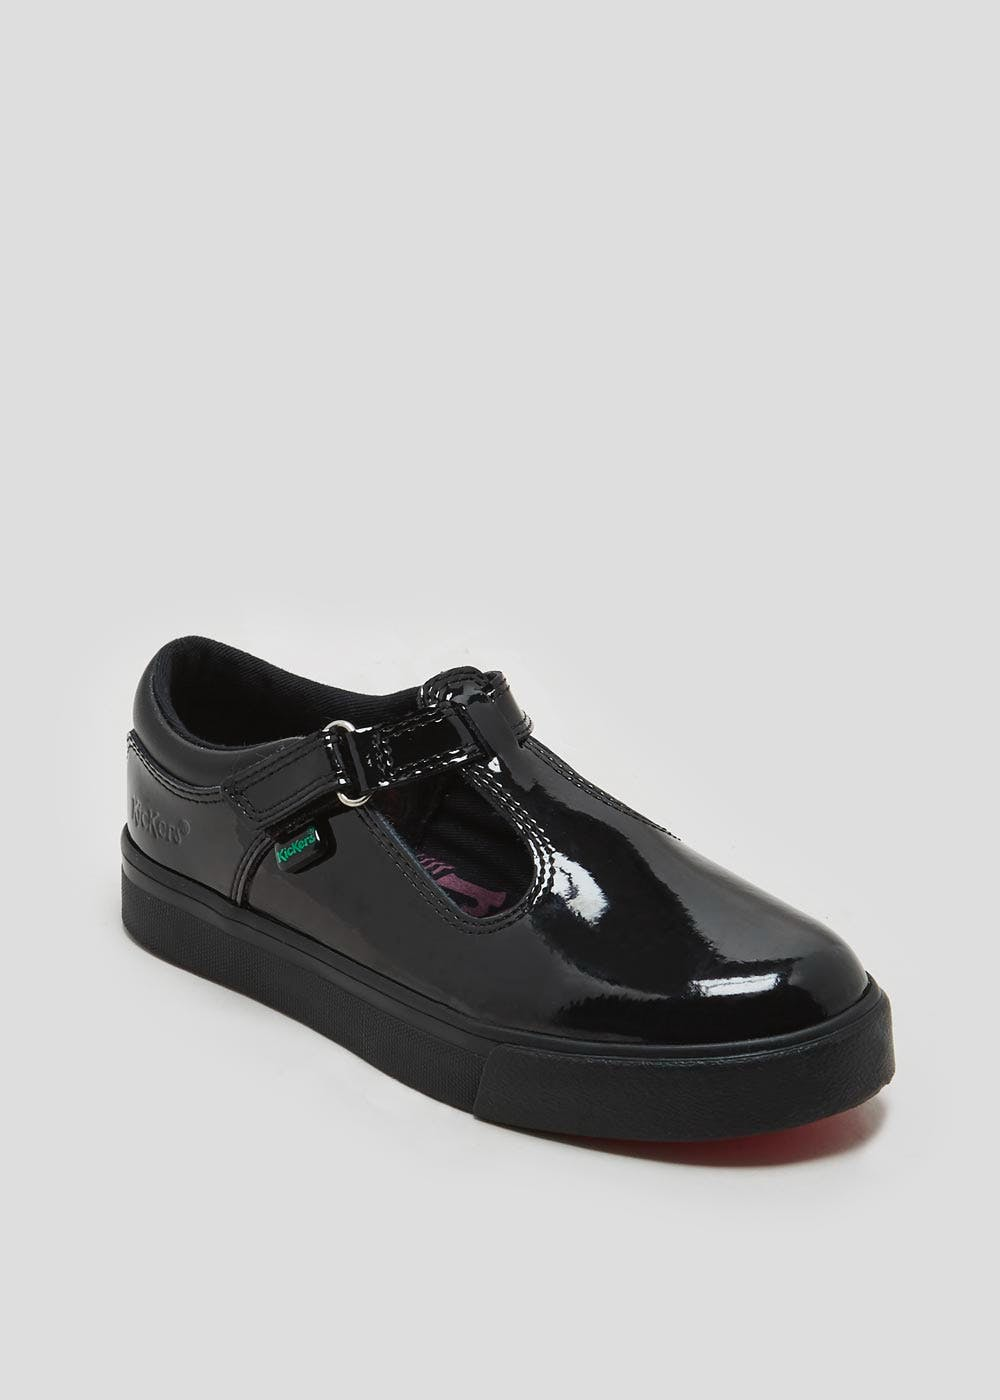 c836aadcc3 Girls Kickers Tovni T Patent School Shoes (Younger 5-Older 6 ...